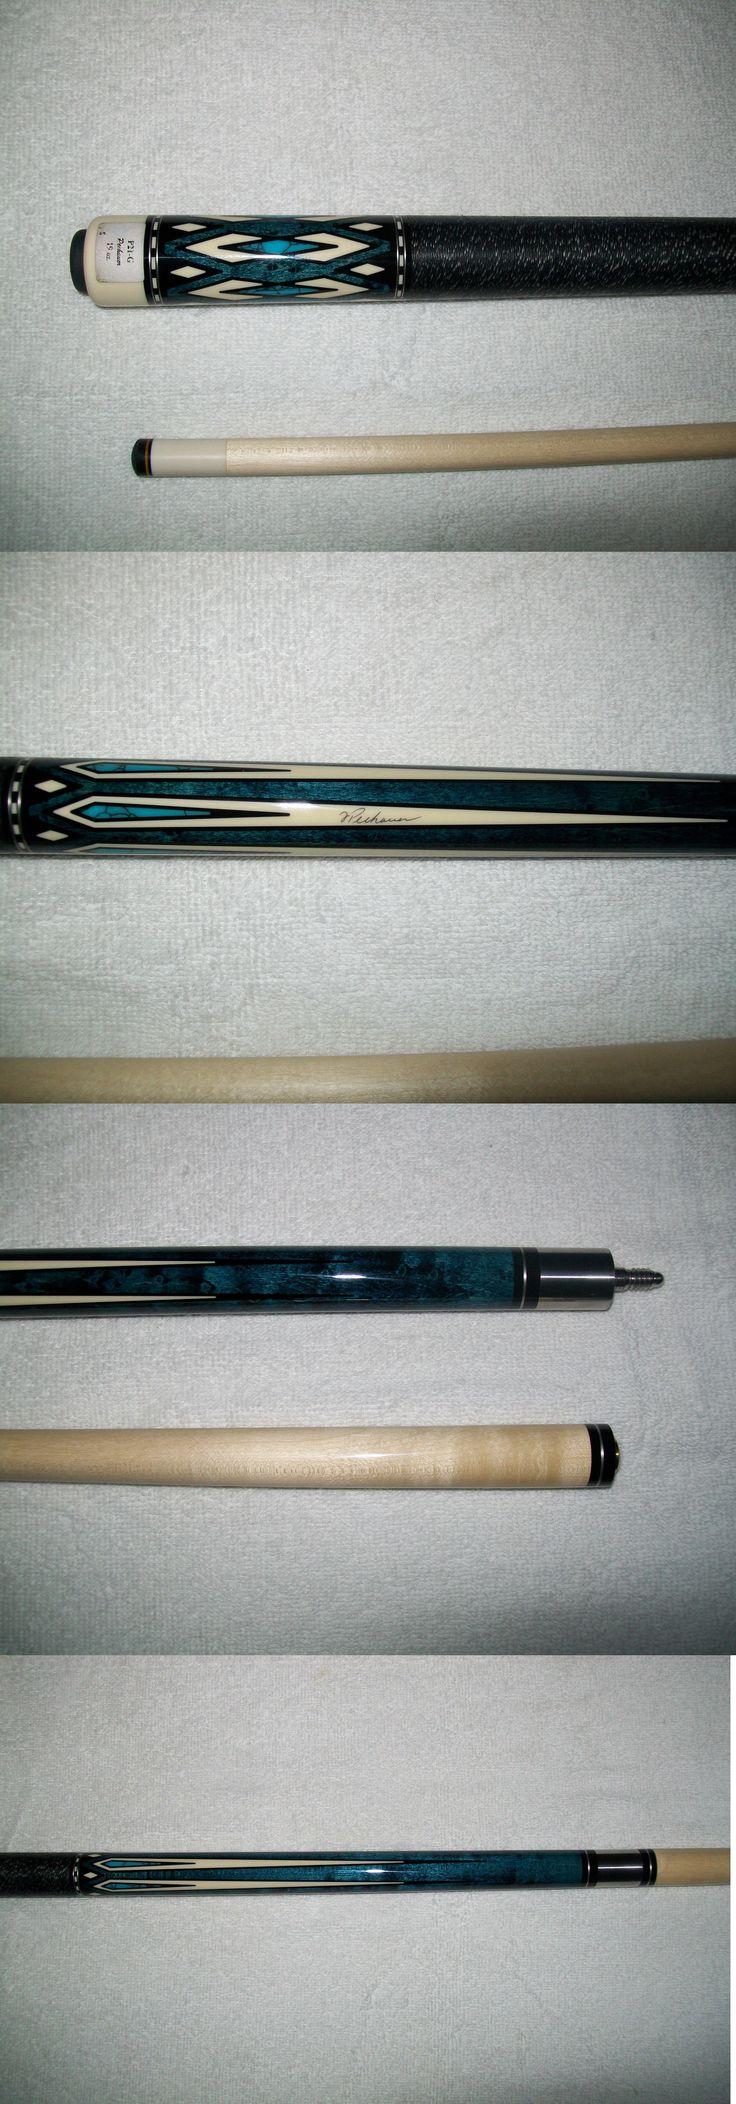 Cues 21568: New Custom J.Pechauer Pro Series Pool Cue P21-G -> BUY IT NOW ONLY: $550 on eBay!